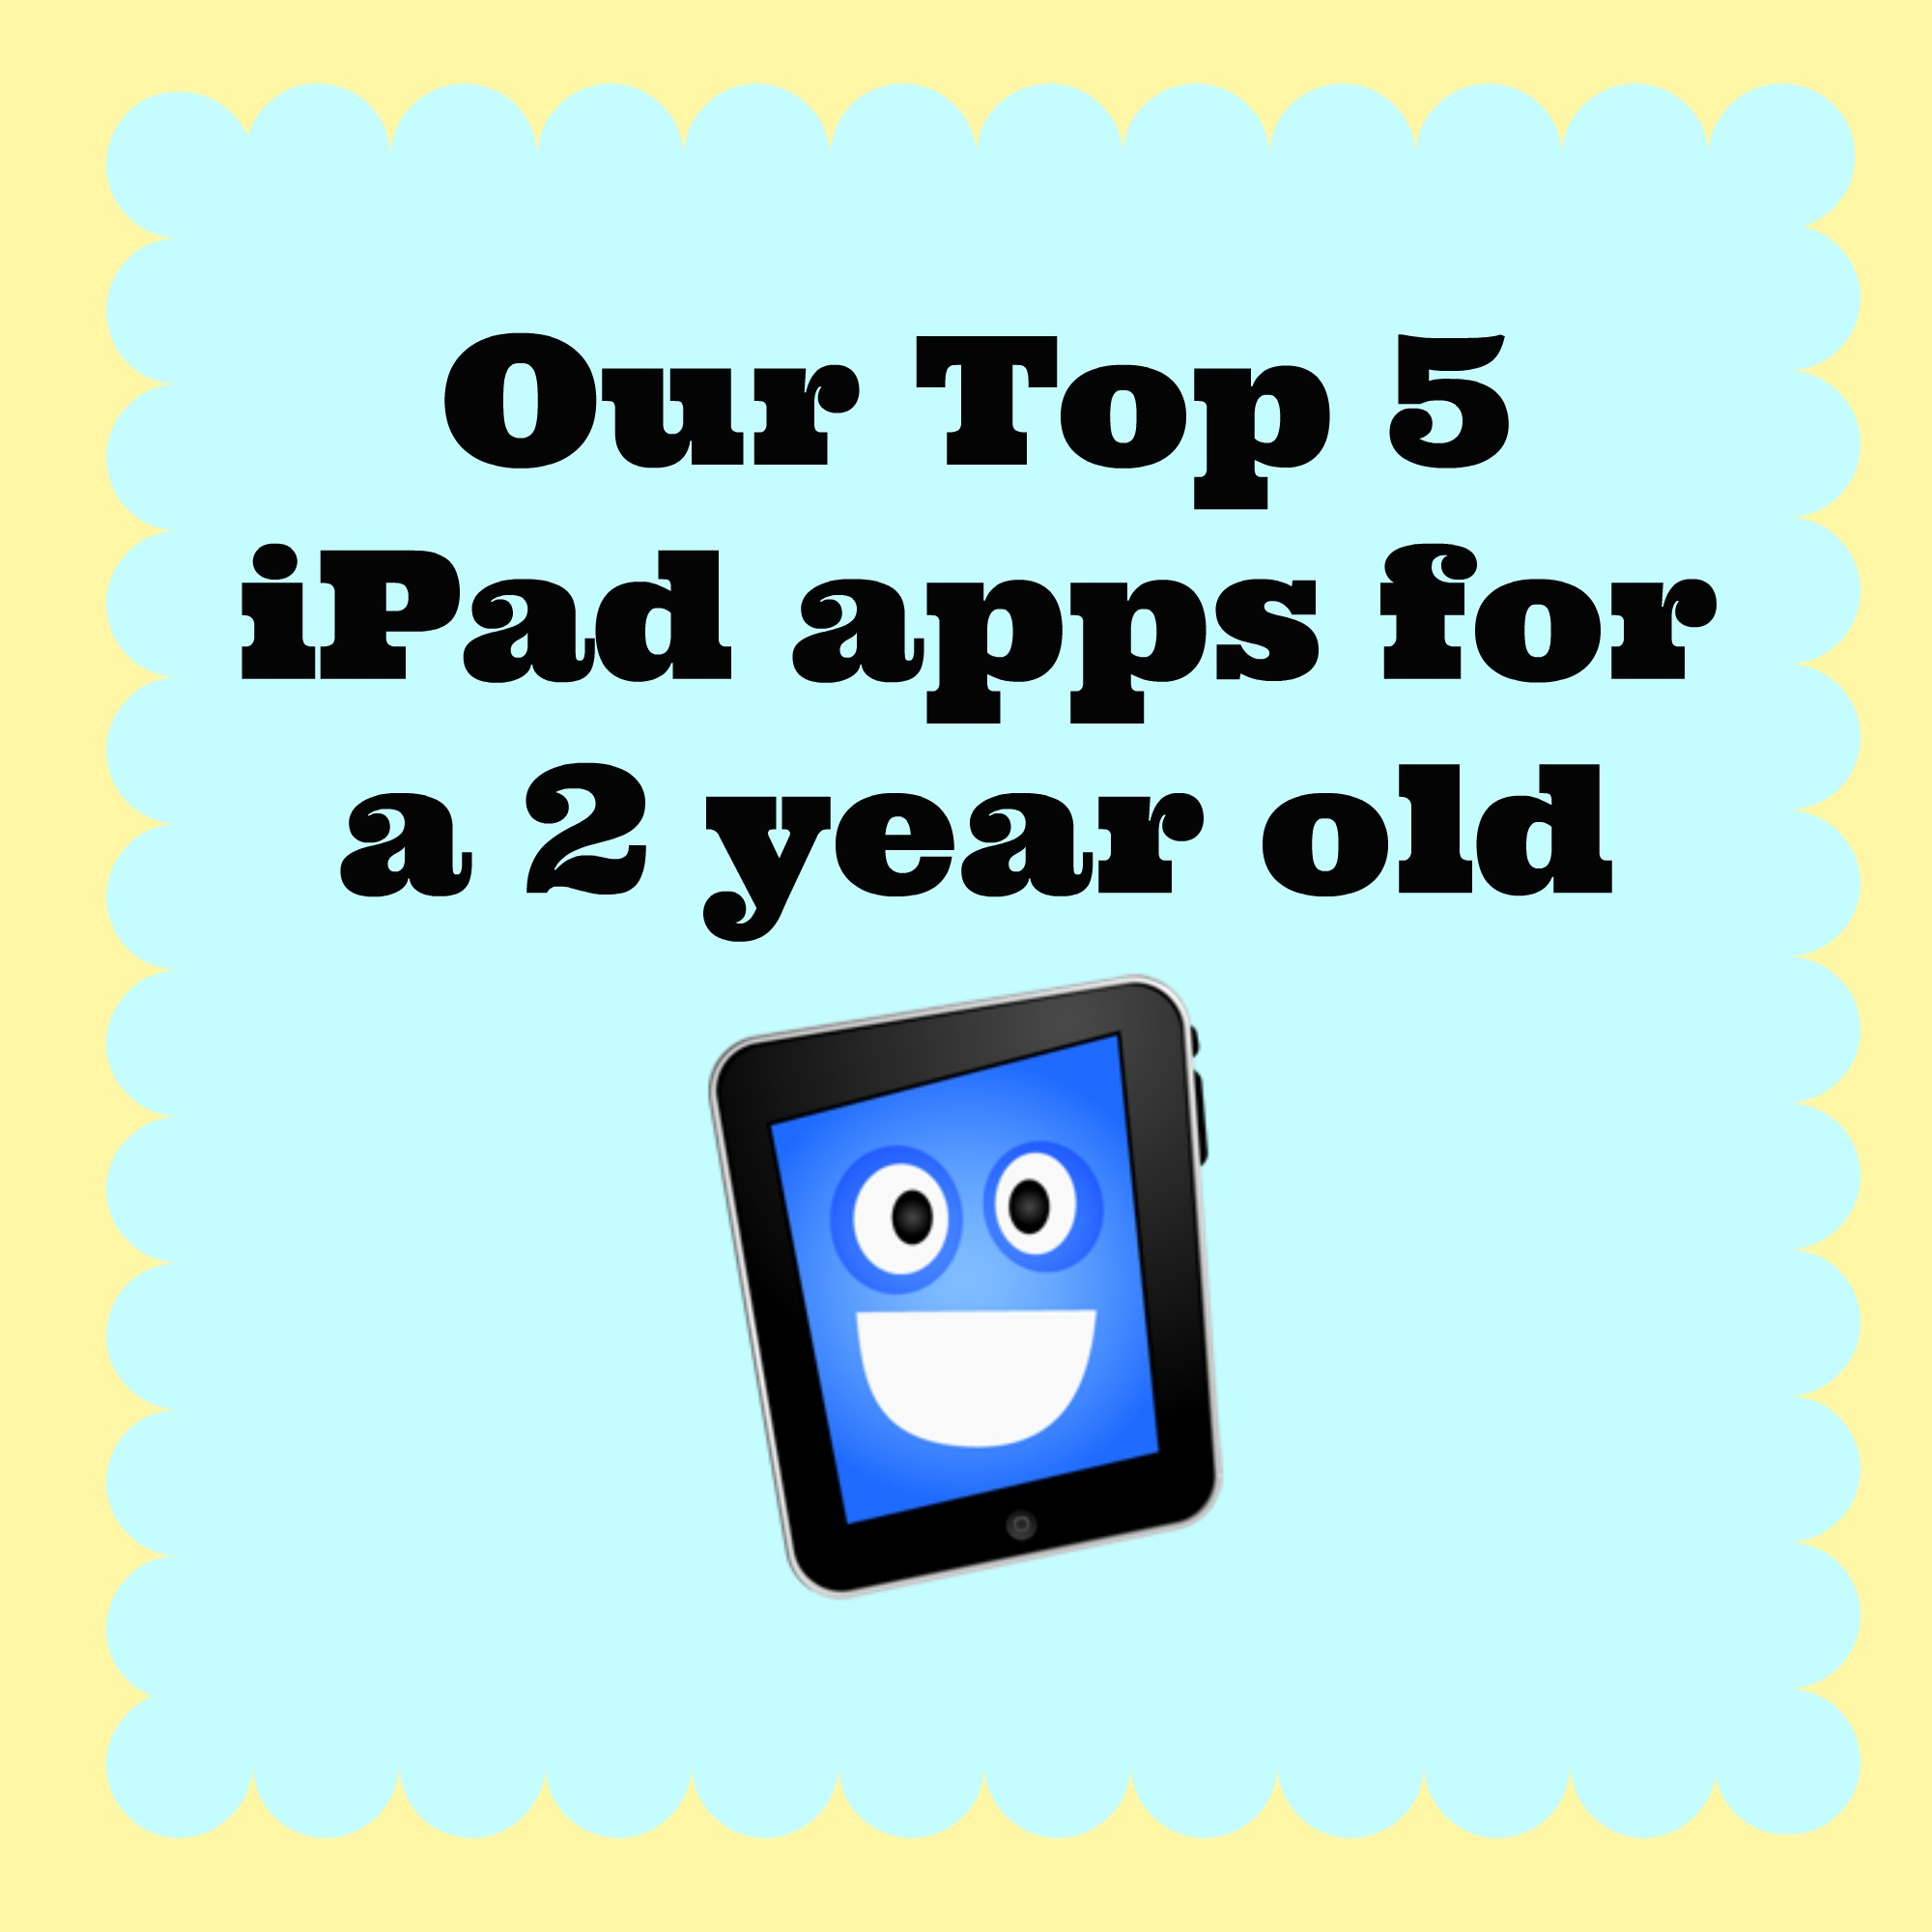 Top iPad Apps for 2 Year Olds - The Ramblings of a Formerly Rock'n'Roll Mum